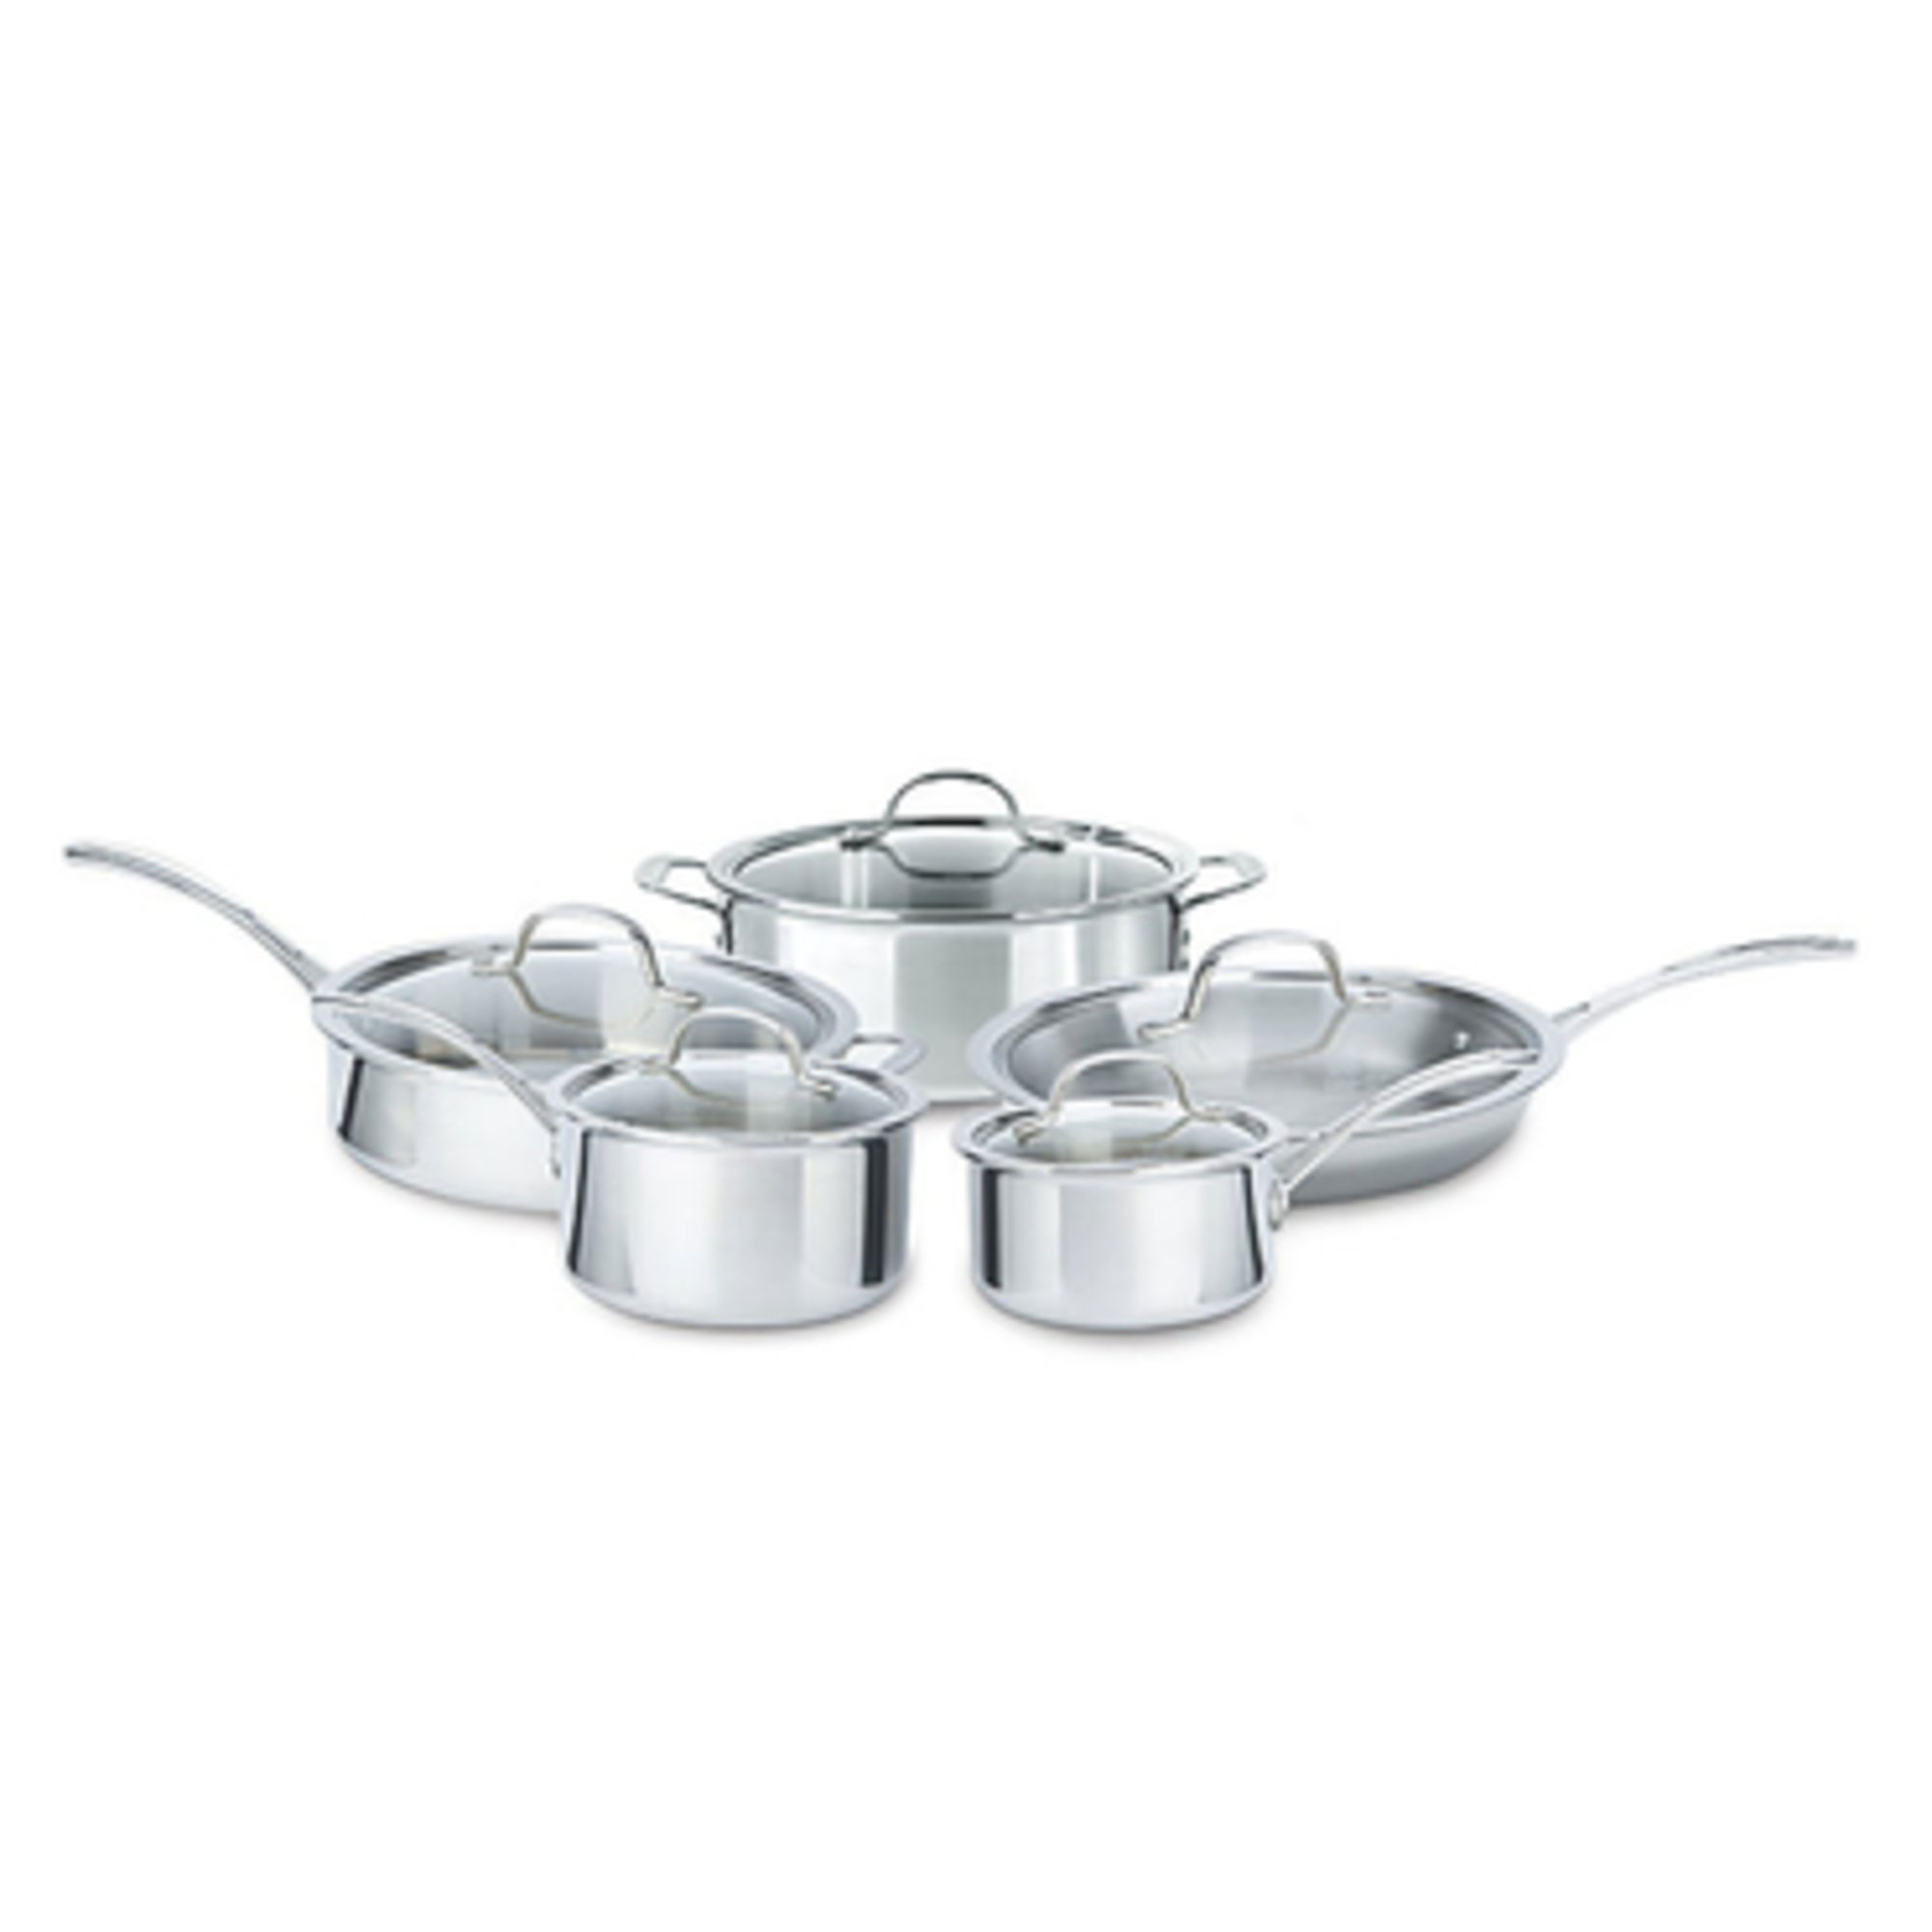 Strange Calphalon Tri Ply 10 Piece Stainless Steel Cookware Set Home Remodeling Inspirations Genioncuboardxyz